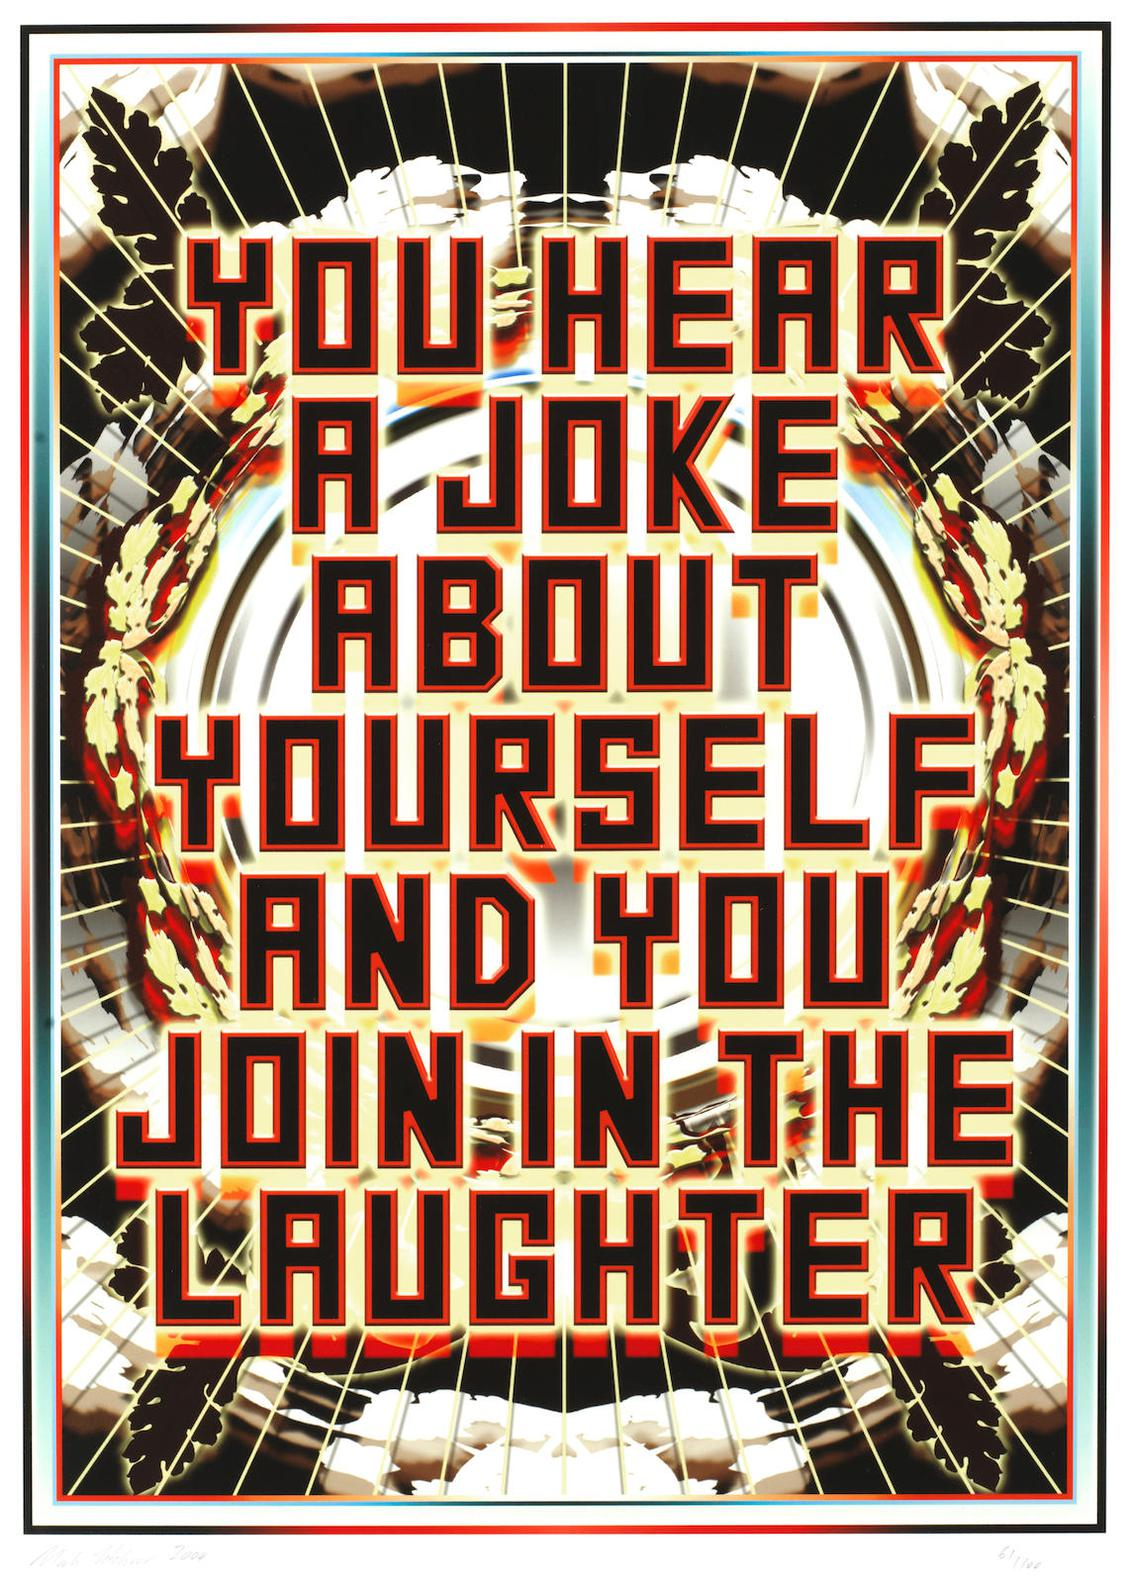 Mark Titchner-You Hear A Joke...-2004